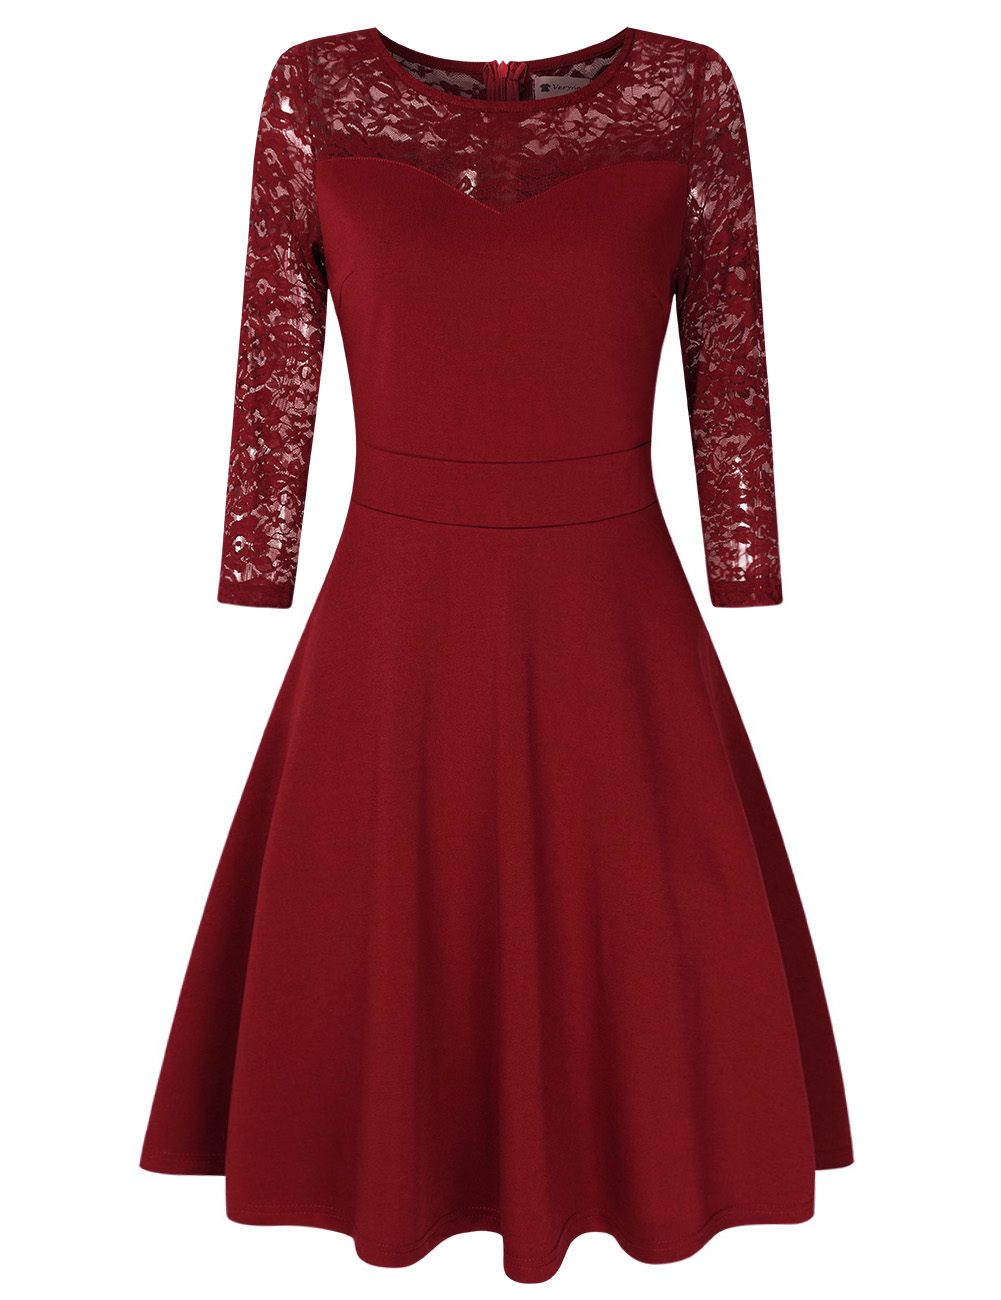 [US Direct] VeryAnn Women A Line Cocktail Dress Empire Lace Fit and Flare Dress Red wine_S